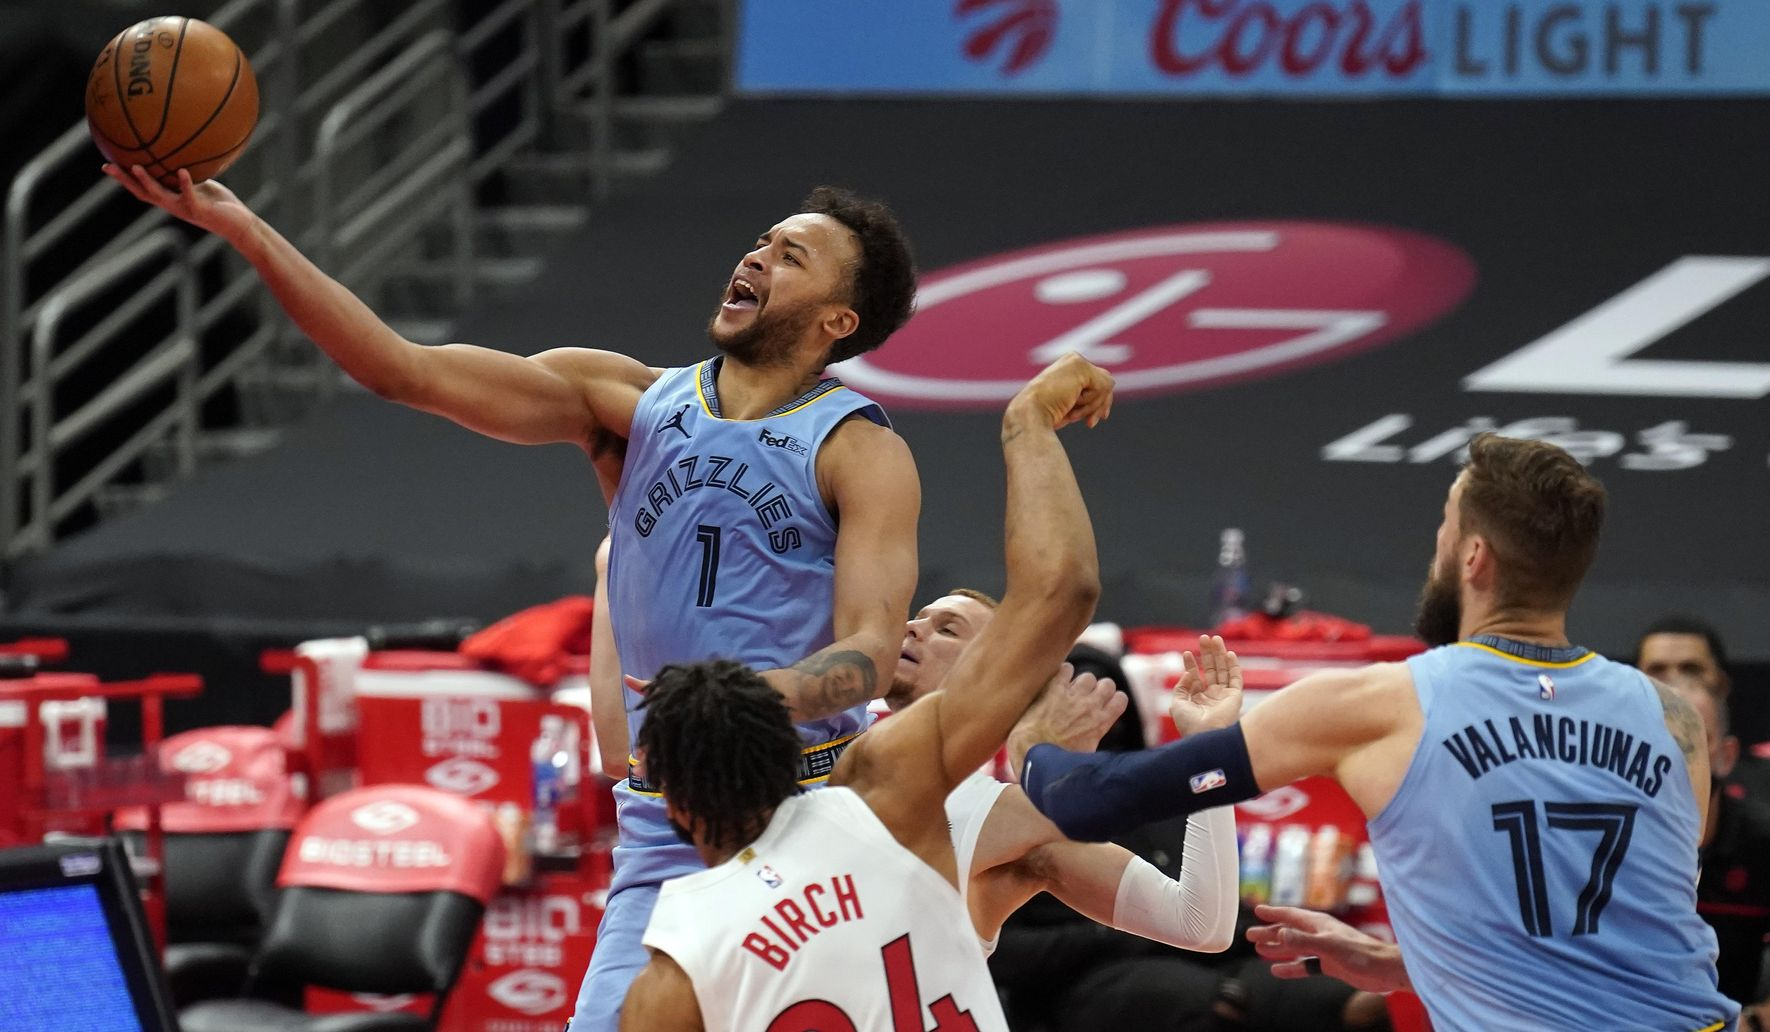 Grizzlies_raptors_basketball_15490_c0-175-4200-2623_s1770x1032